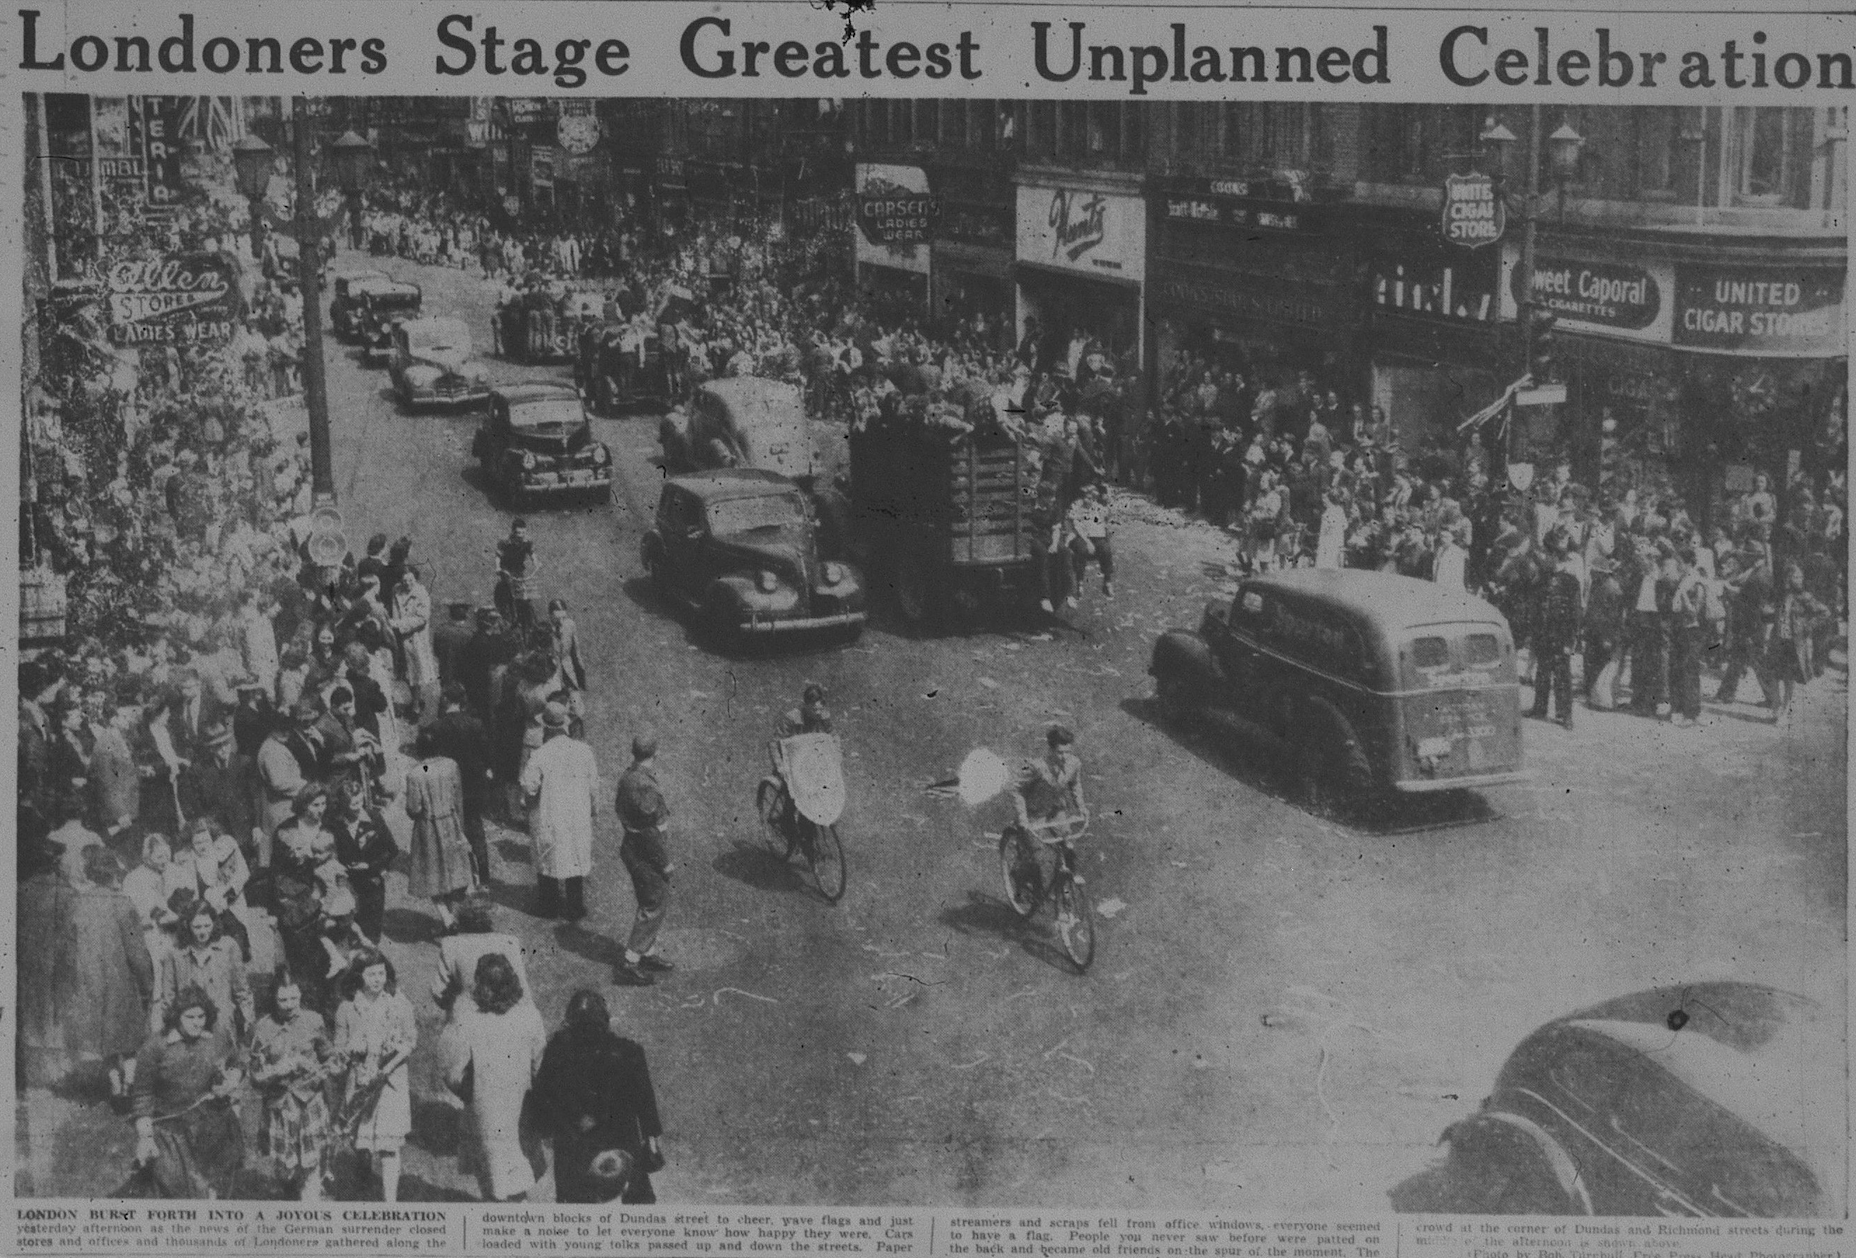 Photo of the Victory in Europe Celebrations in at Dundas and Richmond, May 8, 1945.